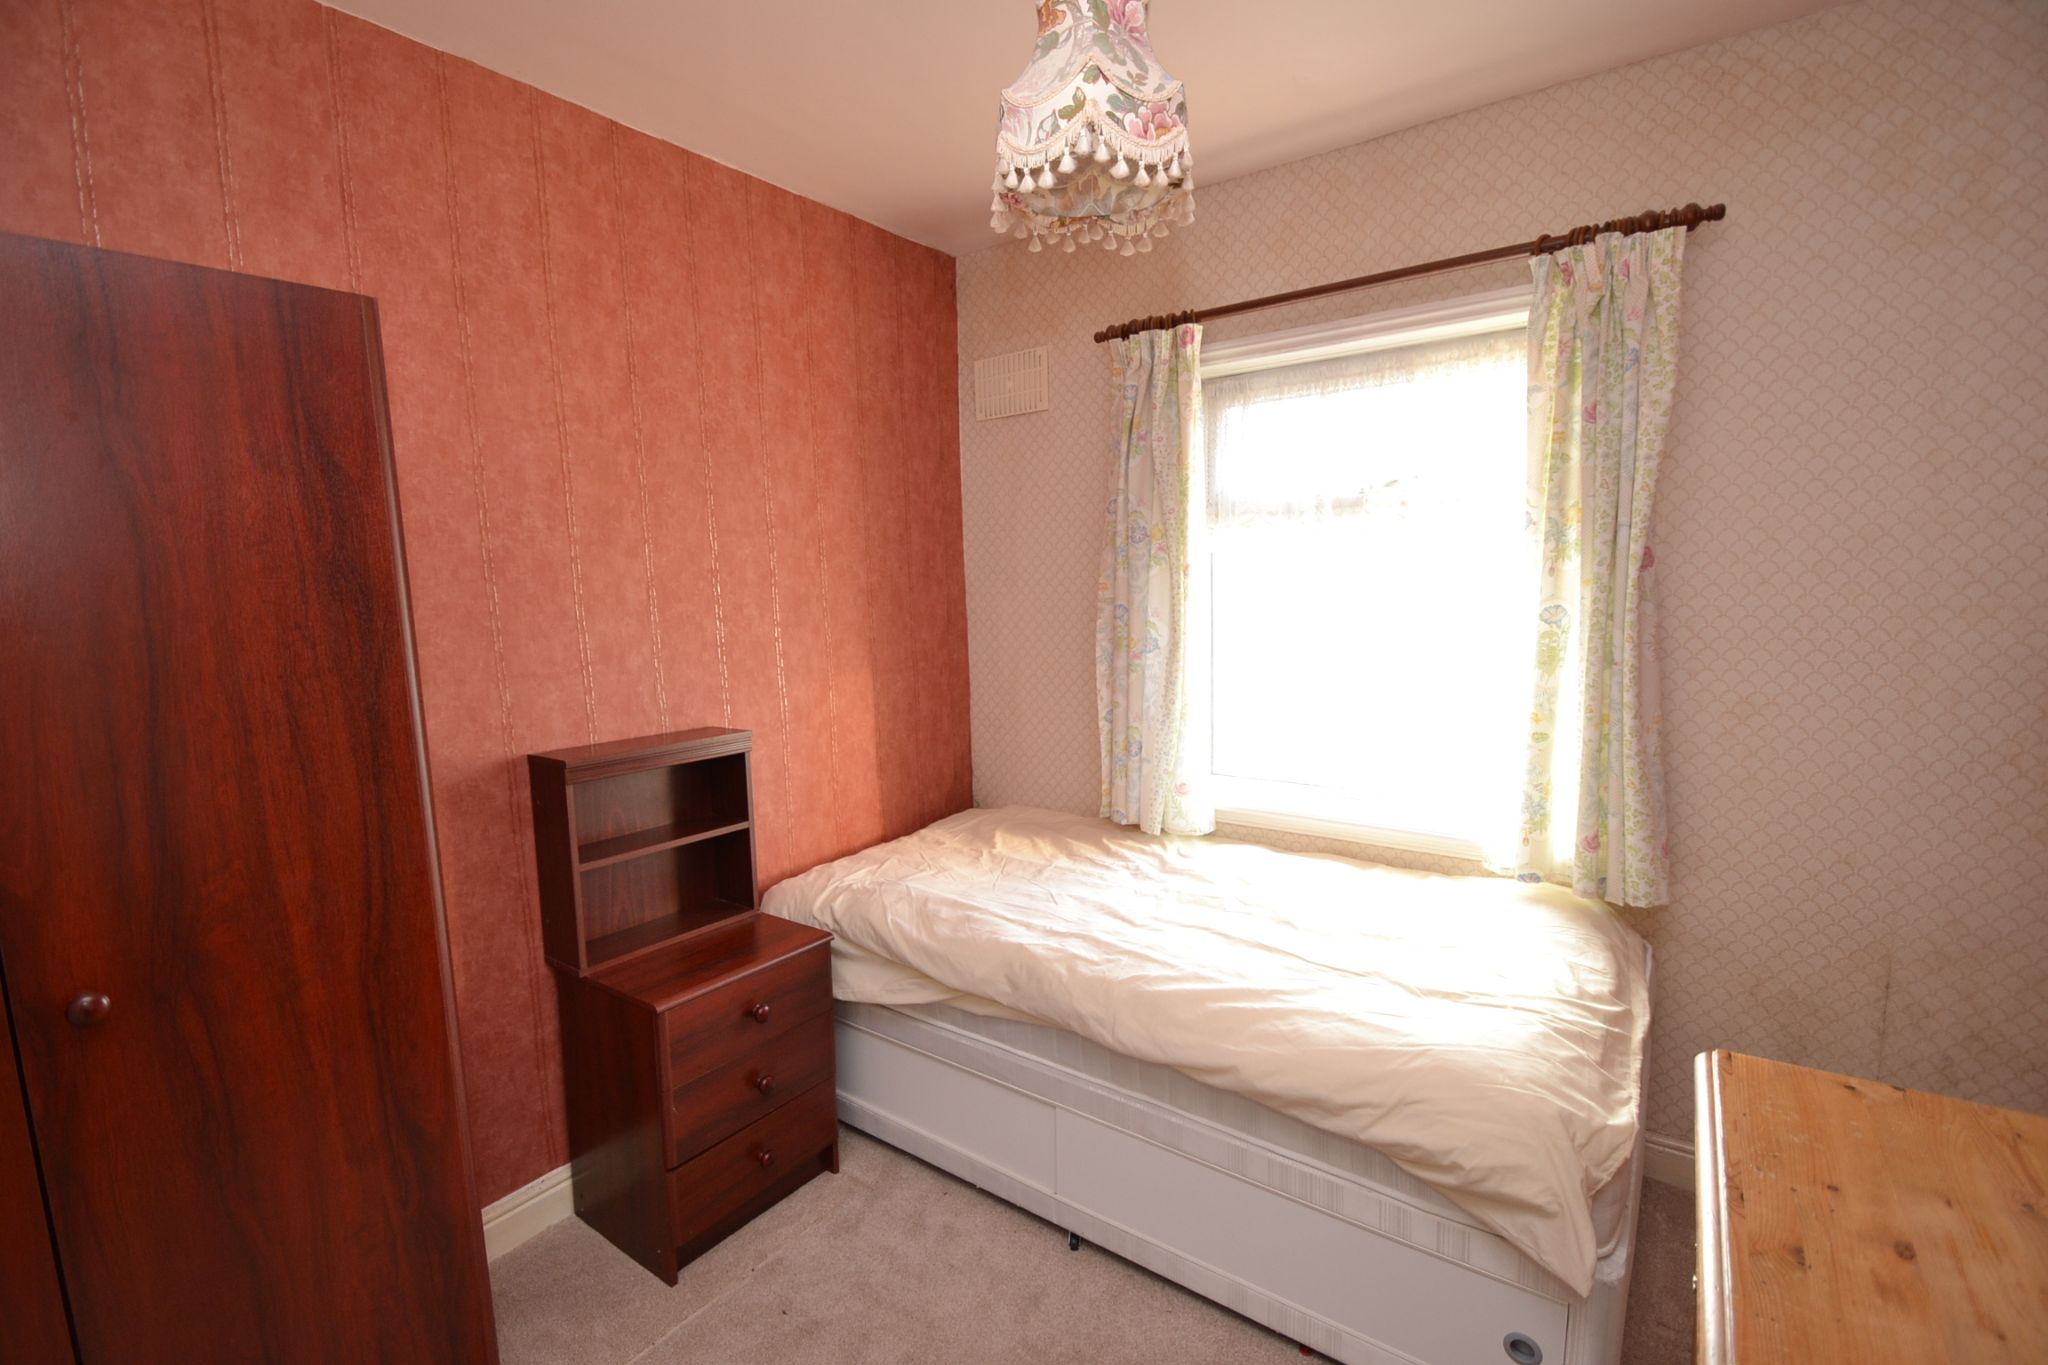 2 Bedroom Semi-detached House For Sale - Photograph 7